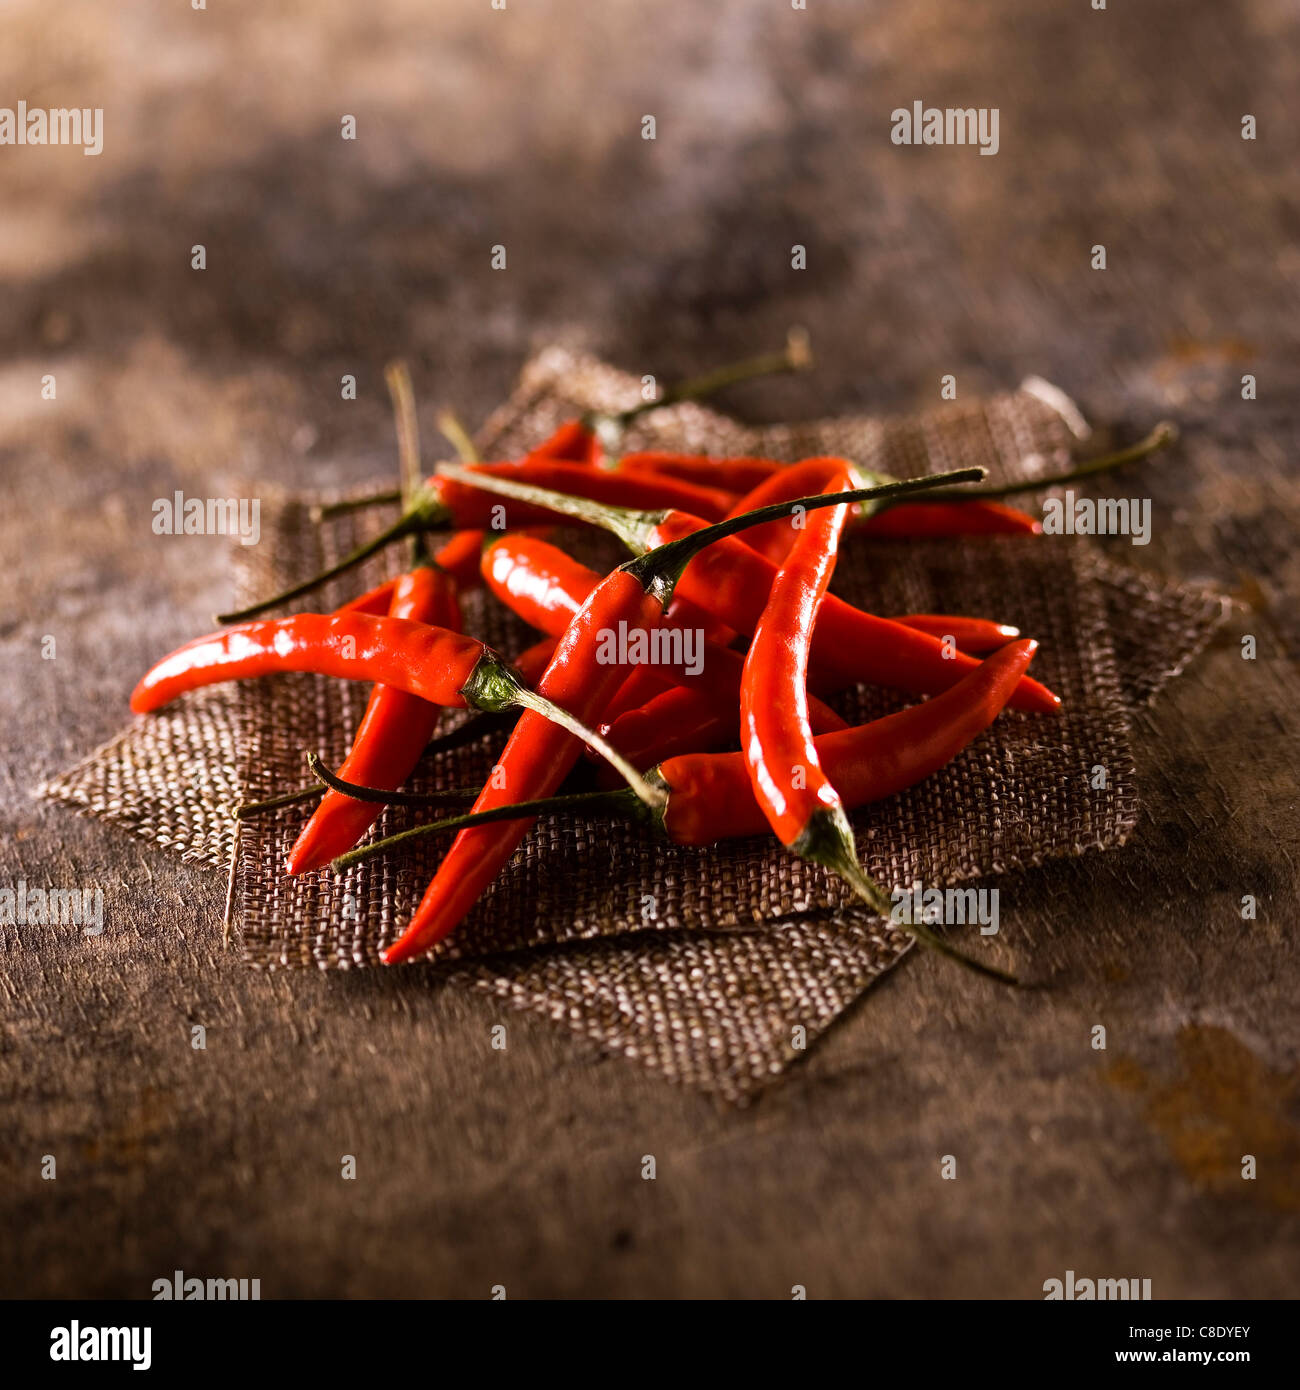 Red hot peppers - Stock Image